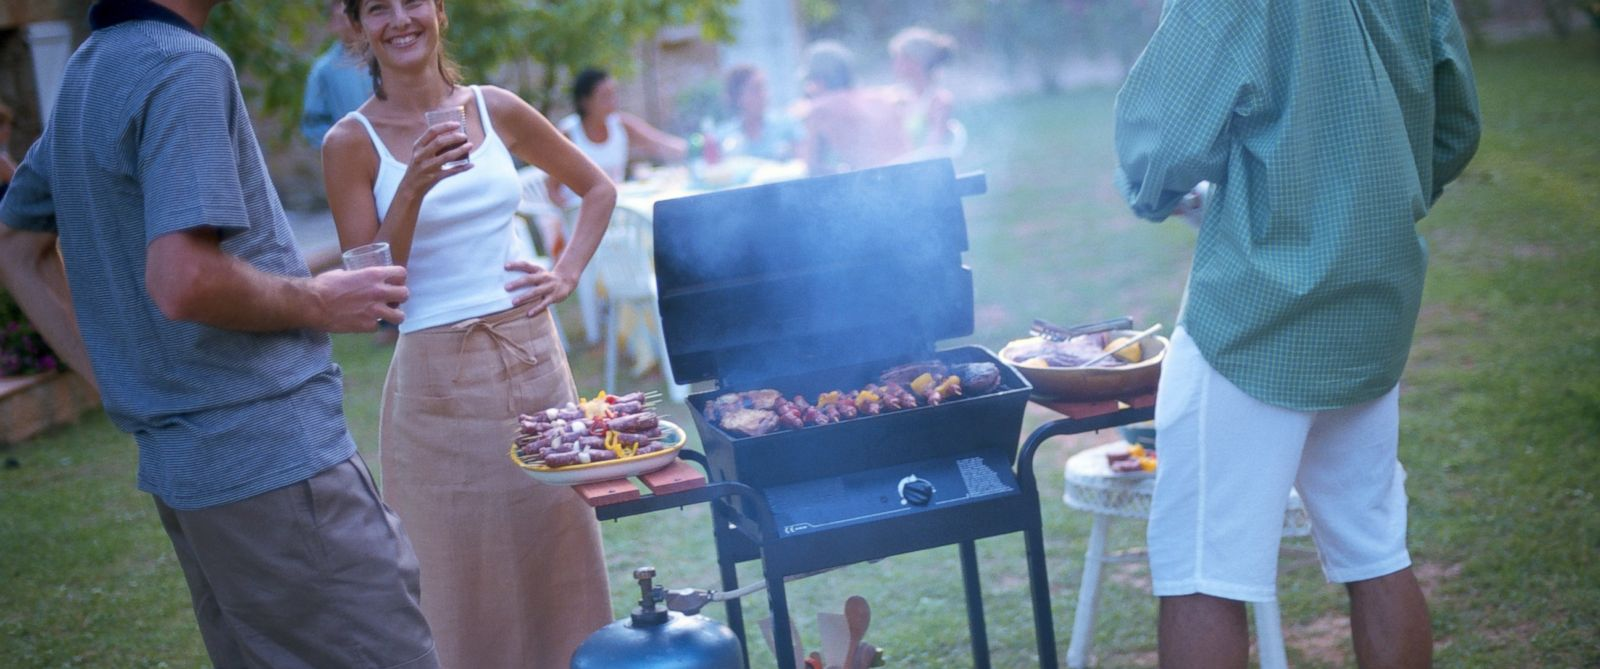 There are ways to safely grill over the Memorial Day holiday.